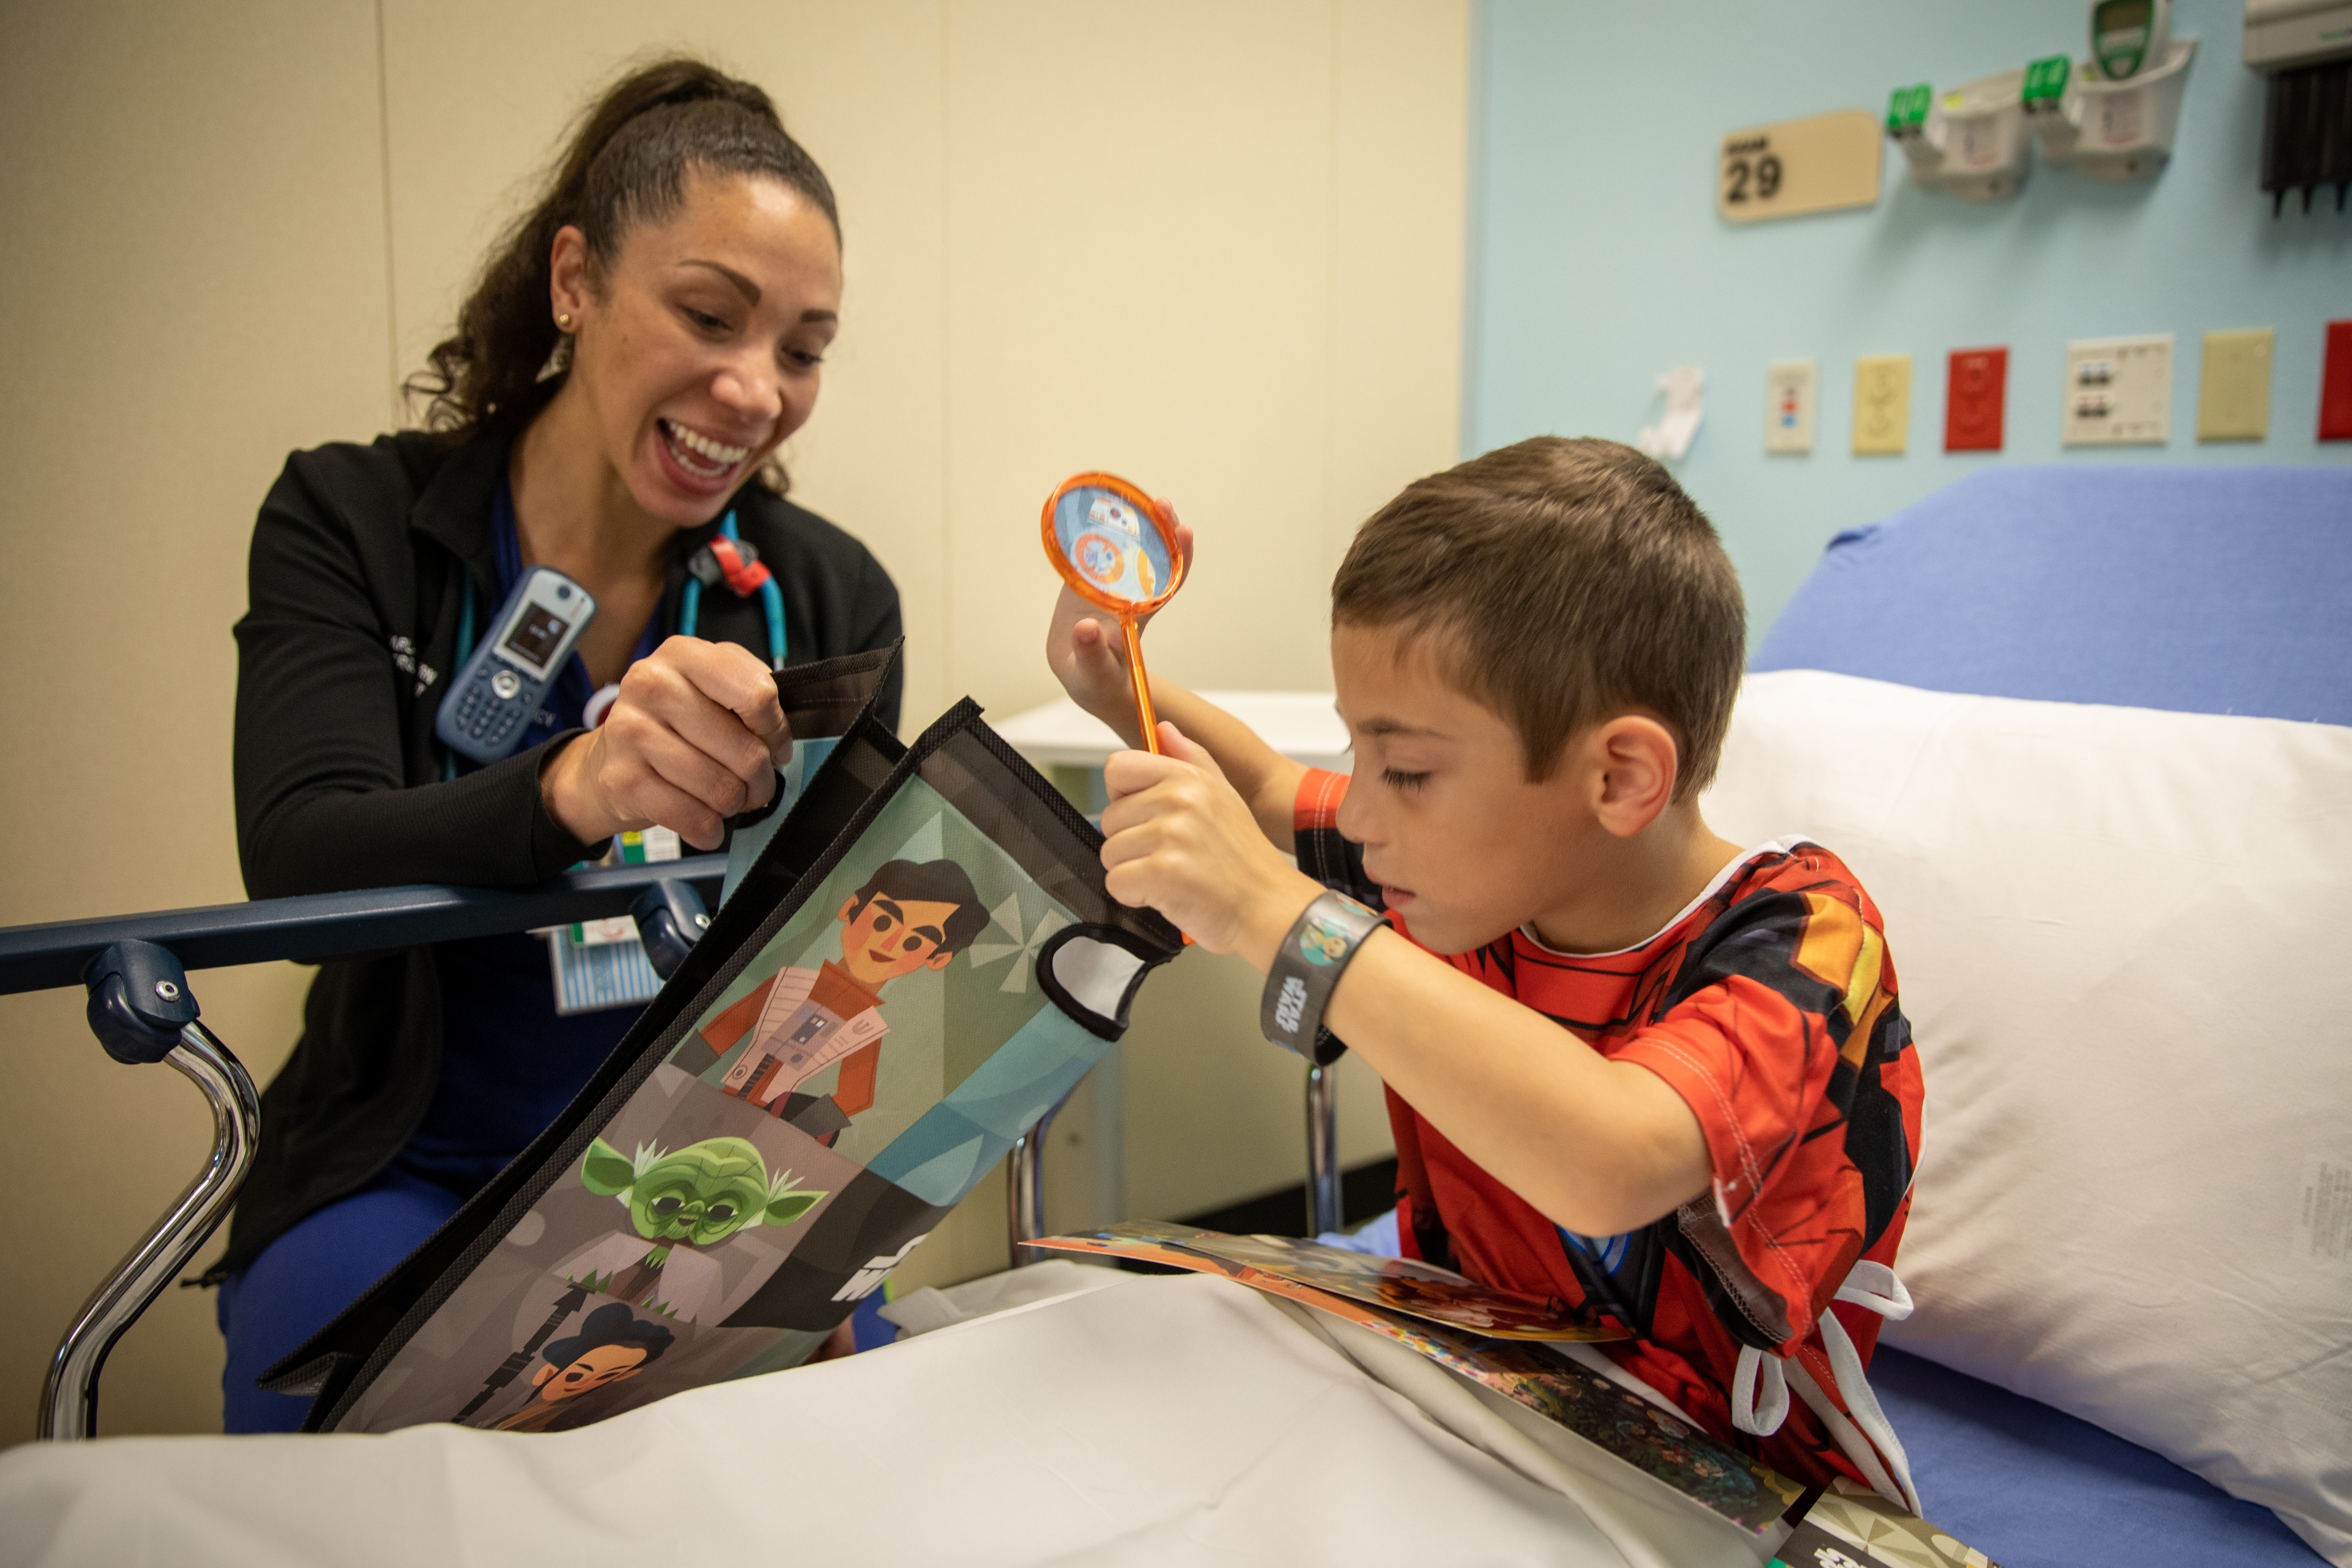 The Disney Children's Hospitals Program Brings Magic to Children and Families